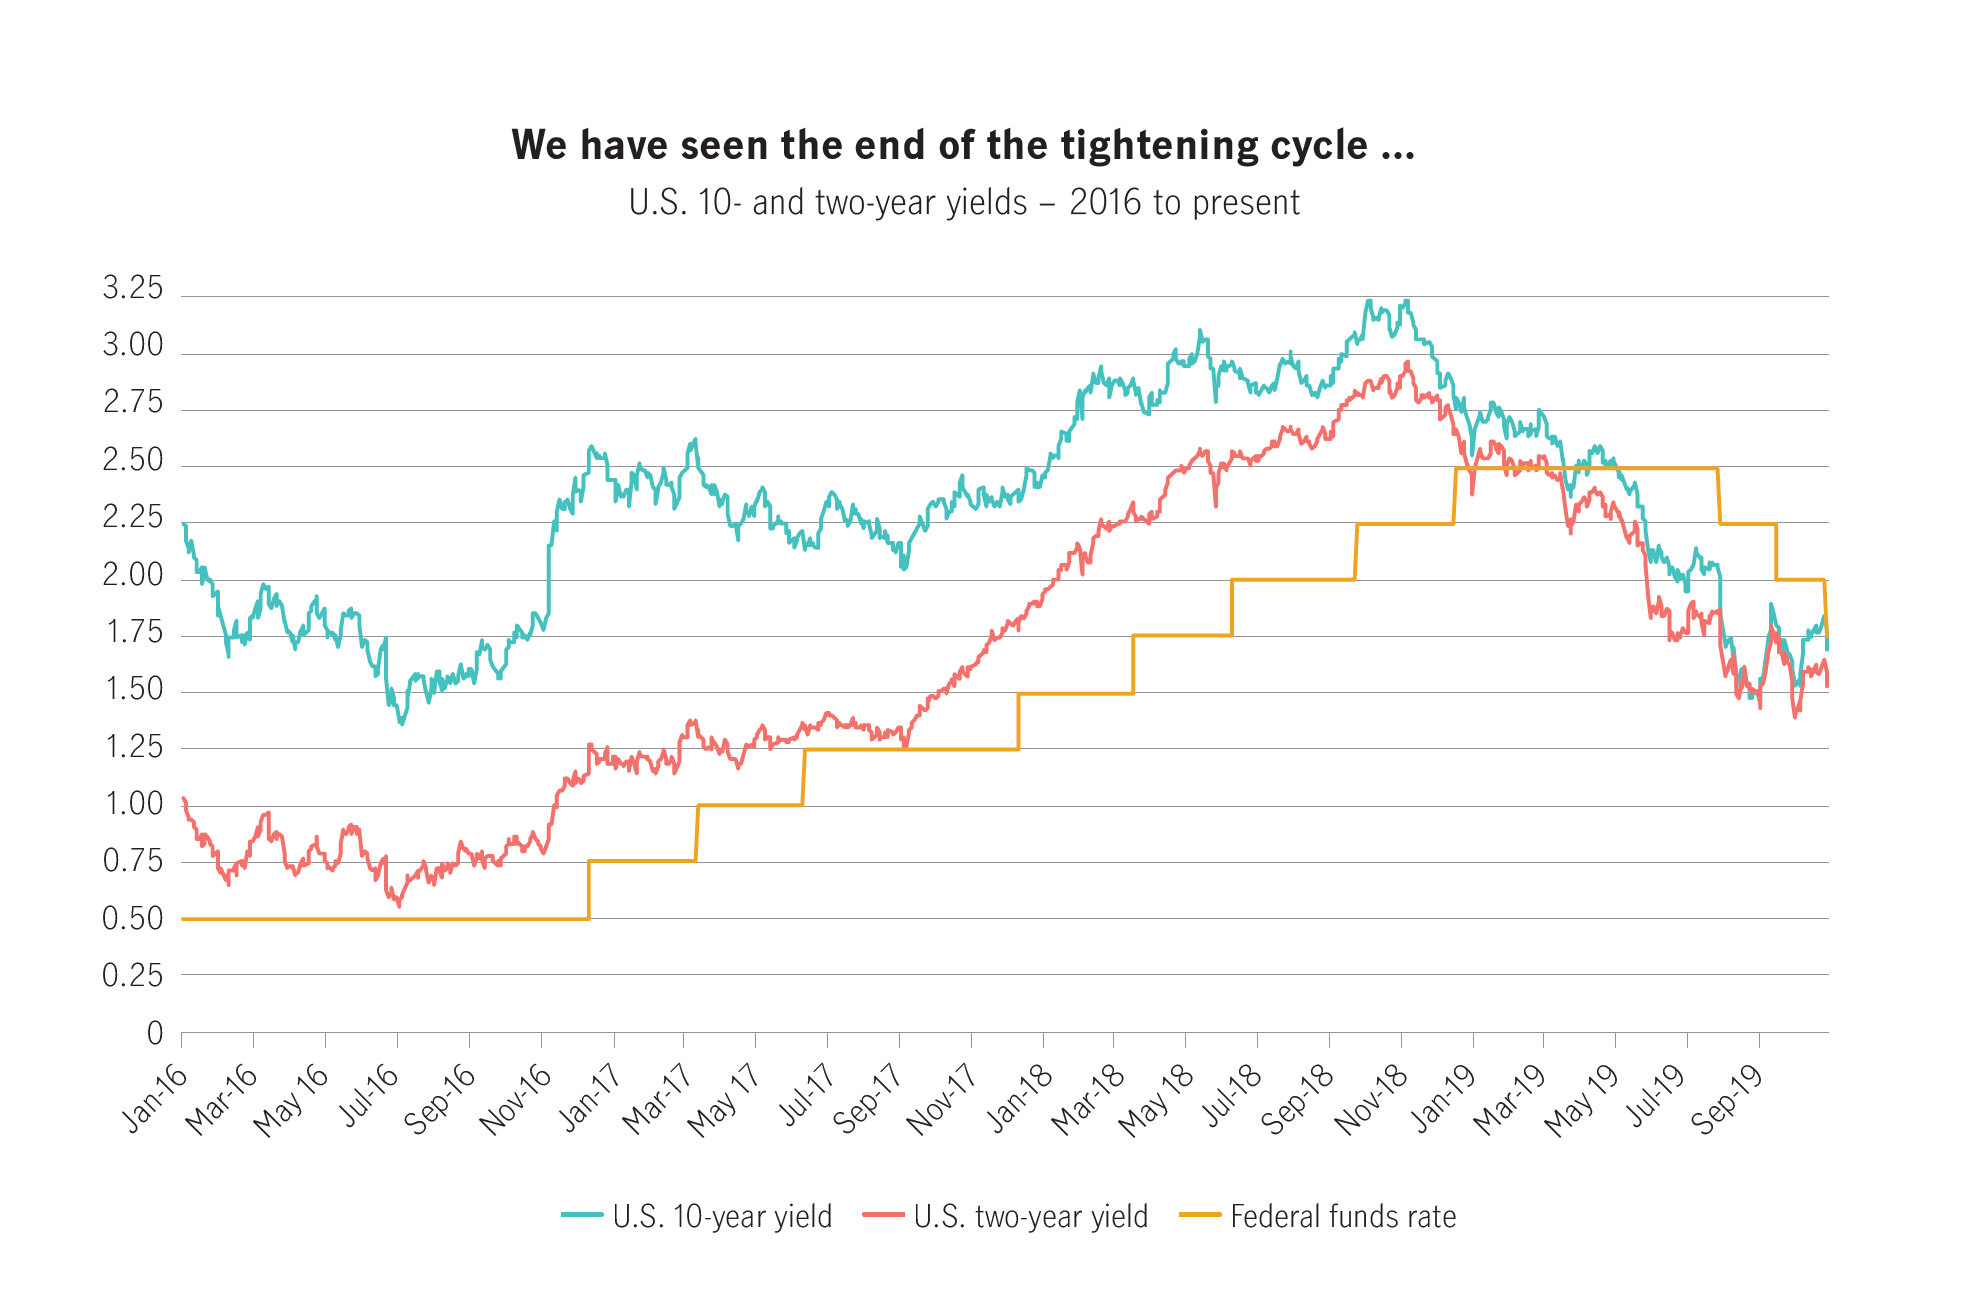 while that curve has flattened, at the end of June 2019, 10-year bonds were maintaining a 25 basis point lead. On June 28, yields for U.S. Treasuries were 2.00 per cent for 10-year bonds, 1.75 per cent for two-year bonds and 2.12 per cent for three-month bonds.